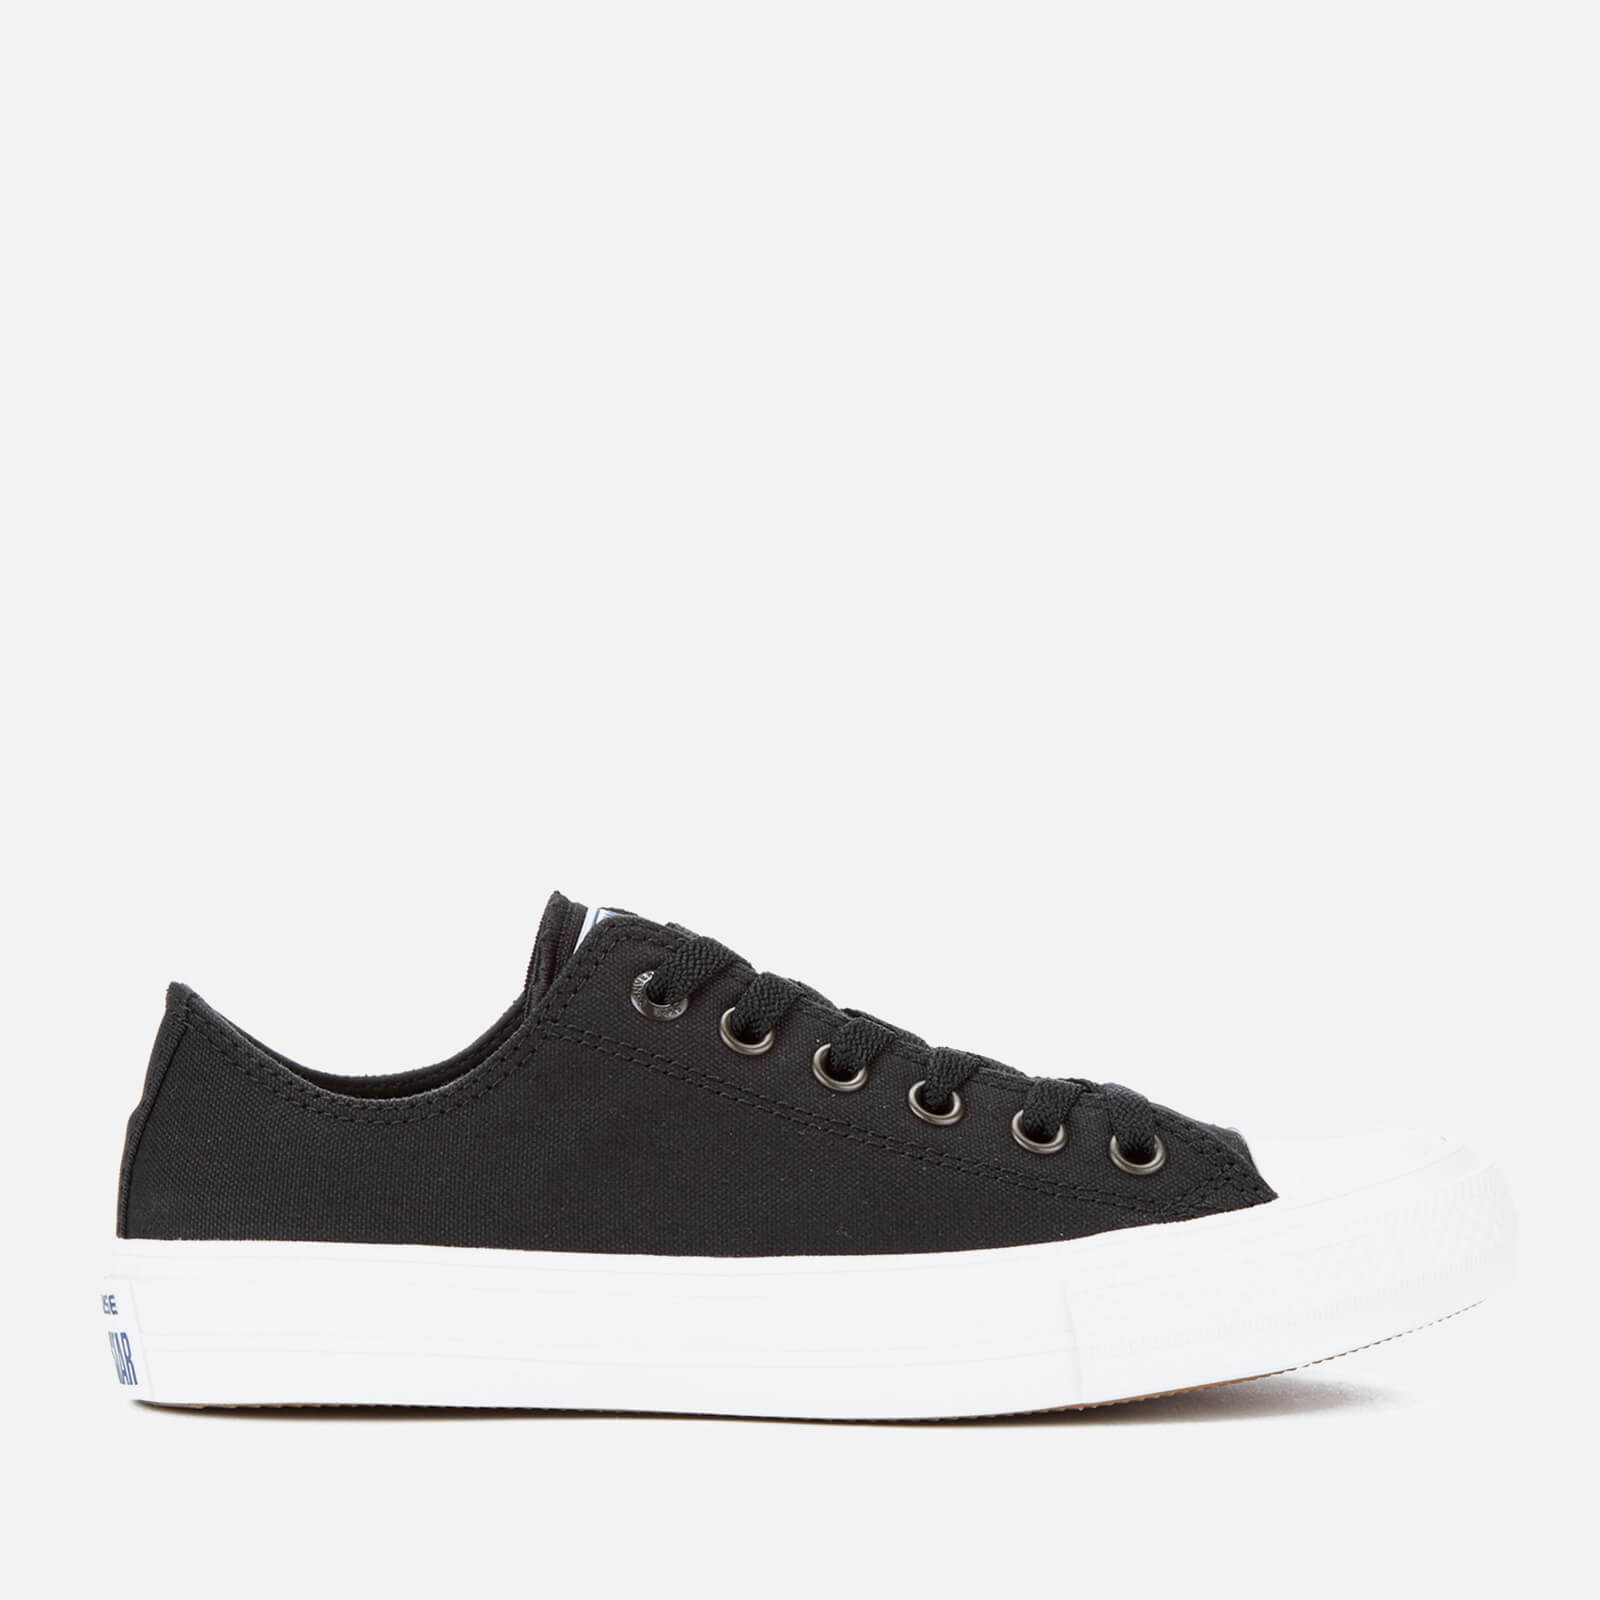 85acfae0970d Converse Chuck Taylor All Star II Ox Trainers - Black White Navy - Free UK  Delivery over £50